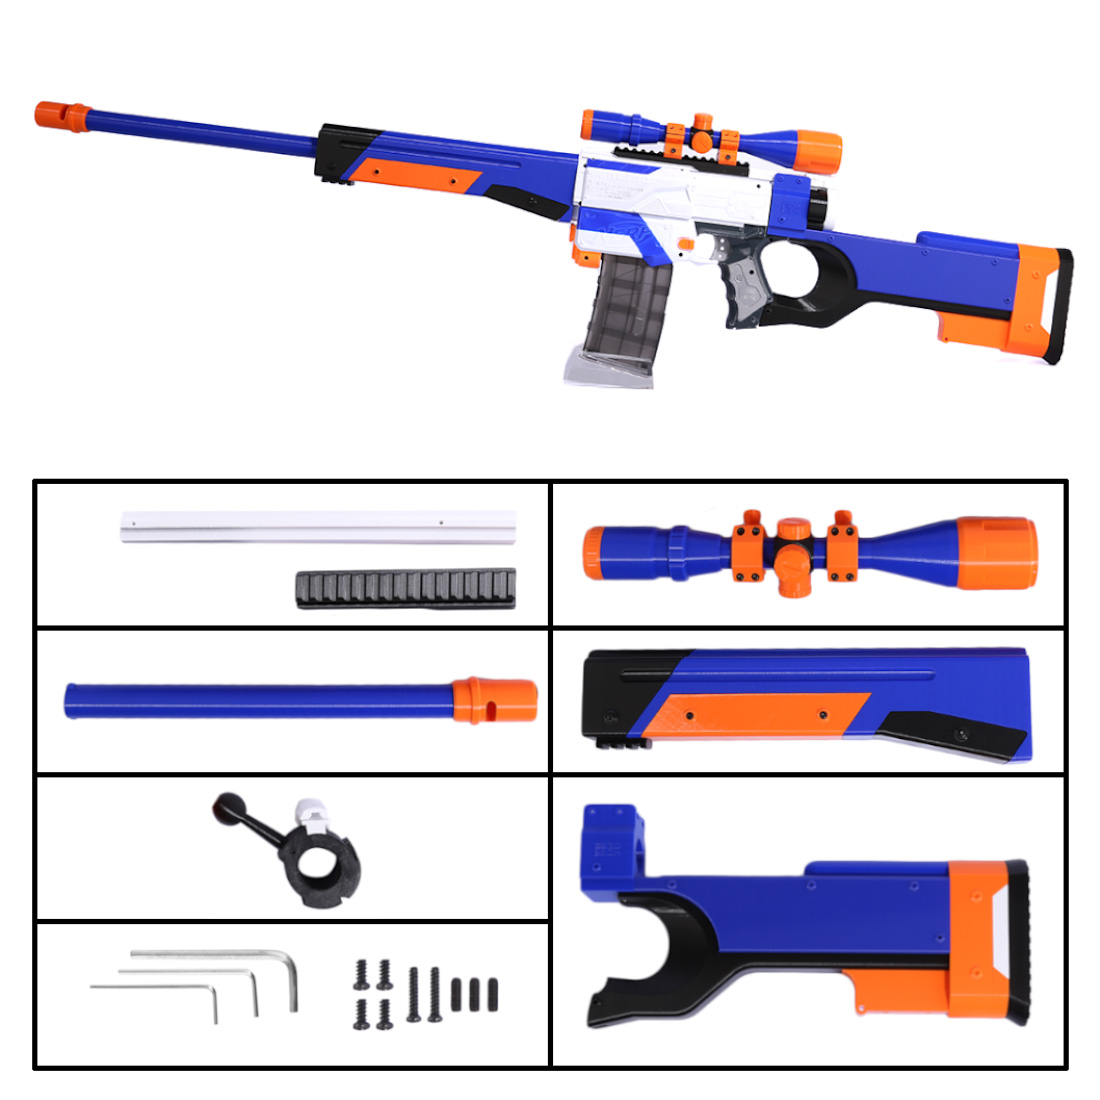 Tactical Kid Toy Gun 3D Printing Appearance Modification Kit for Nerf Retaliator Blasters Accessories Component - Blue